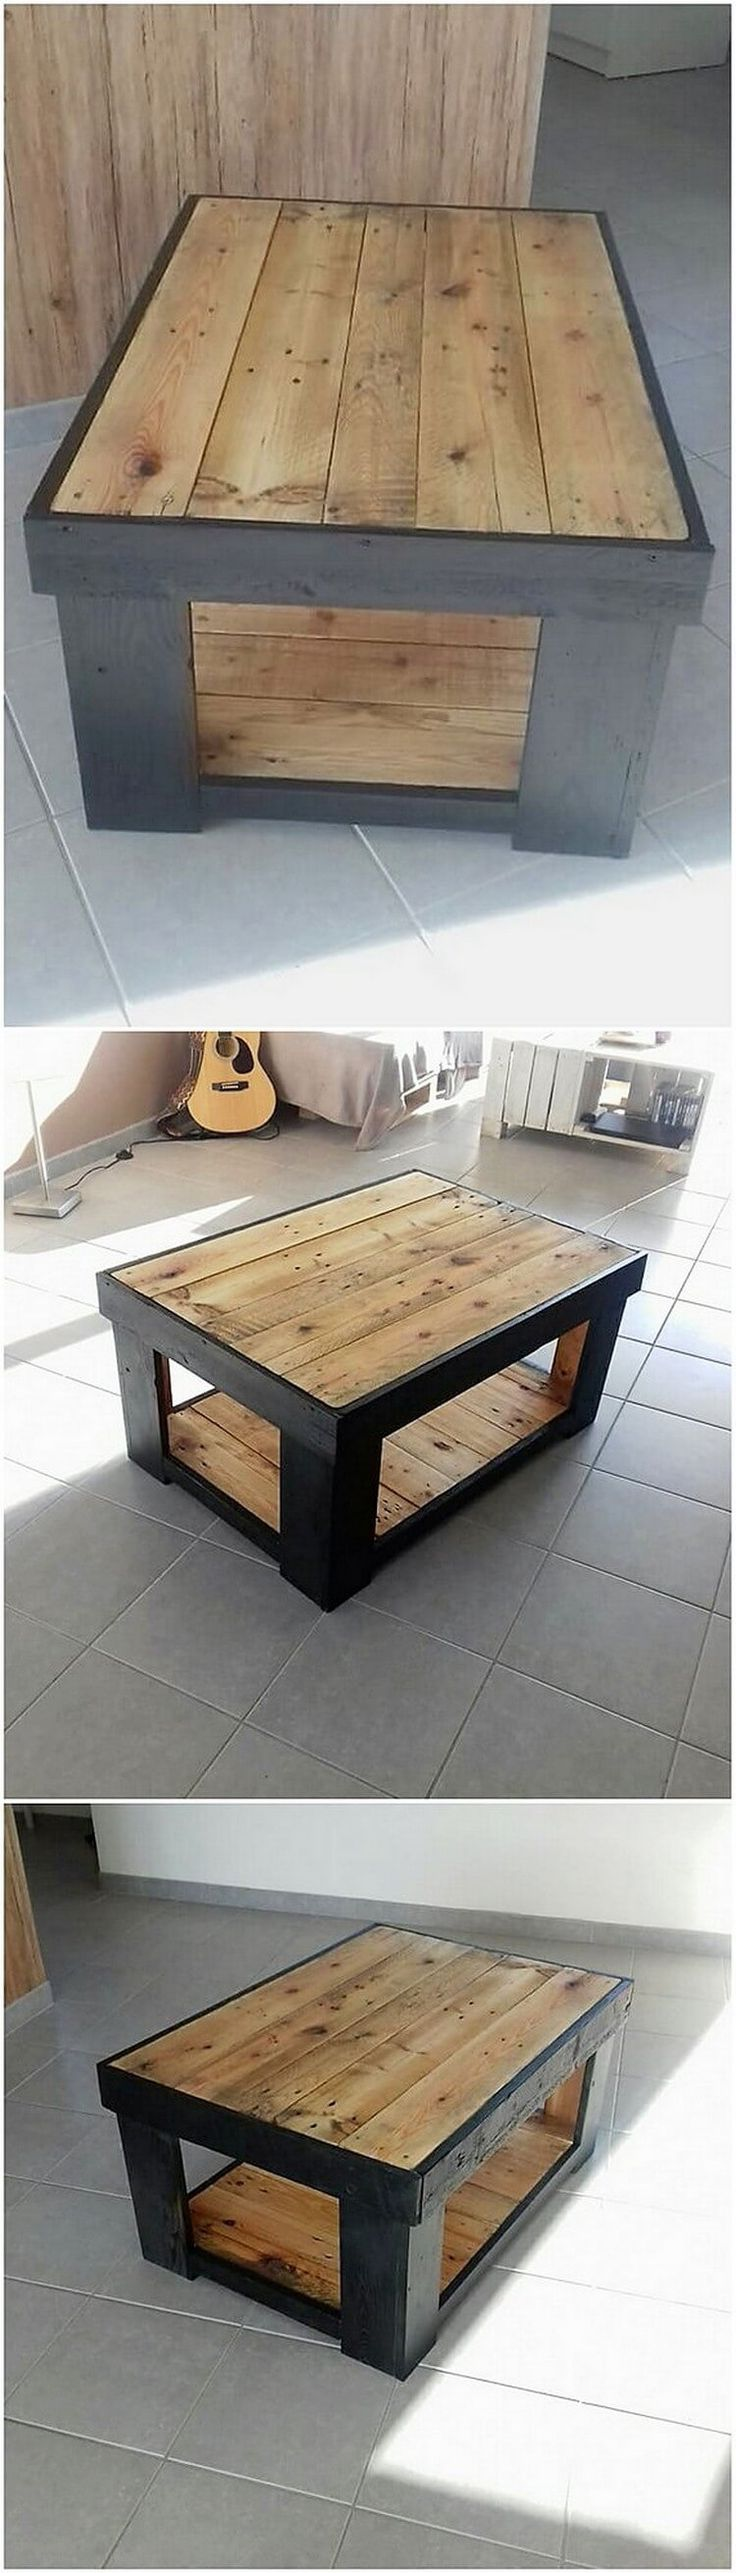 Exemplary Wood Pallet Projects You Will Like